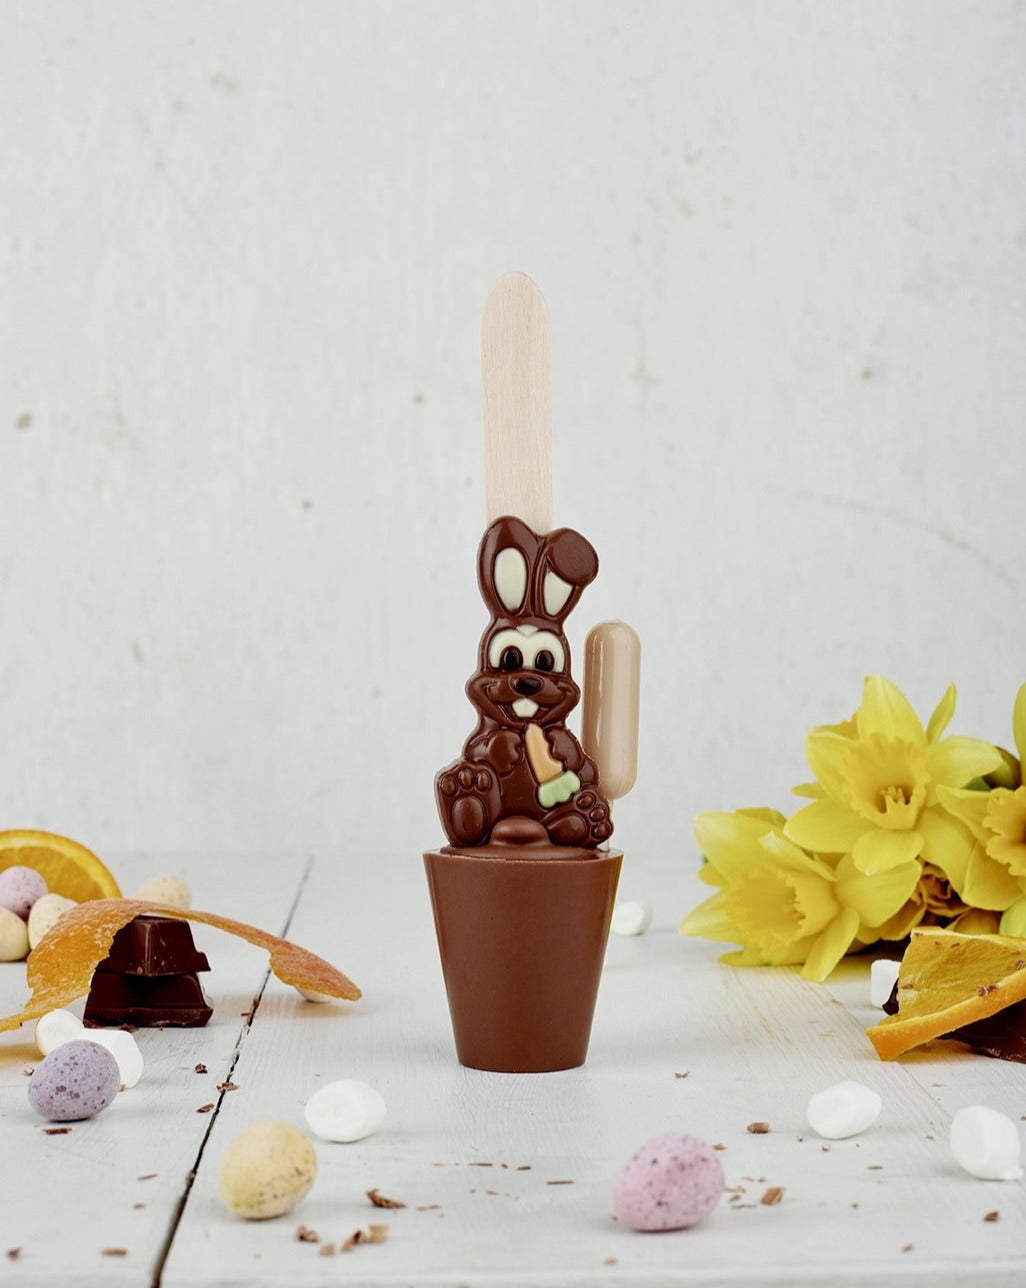 Boozy Easter Bunny Chocolate Orange Chocolate Spoon